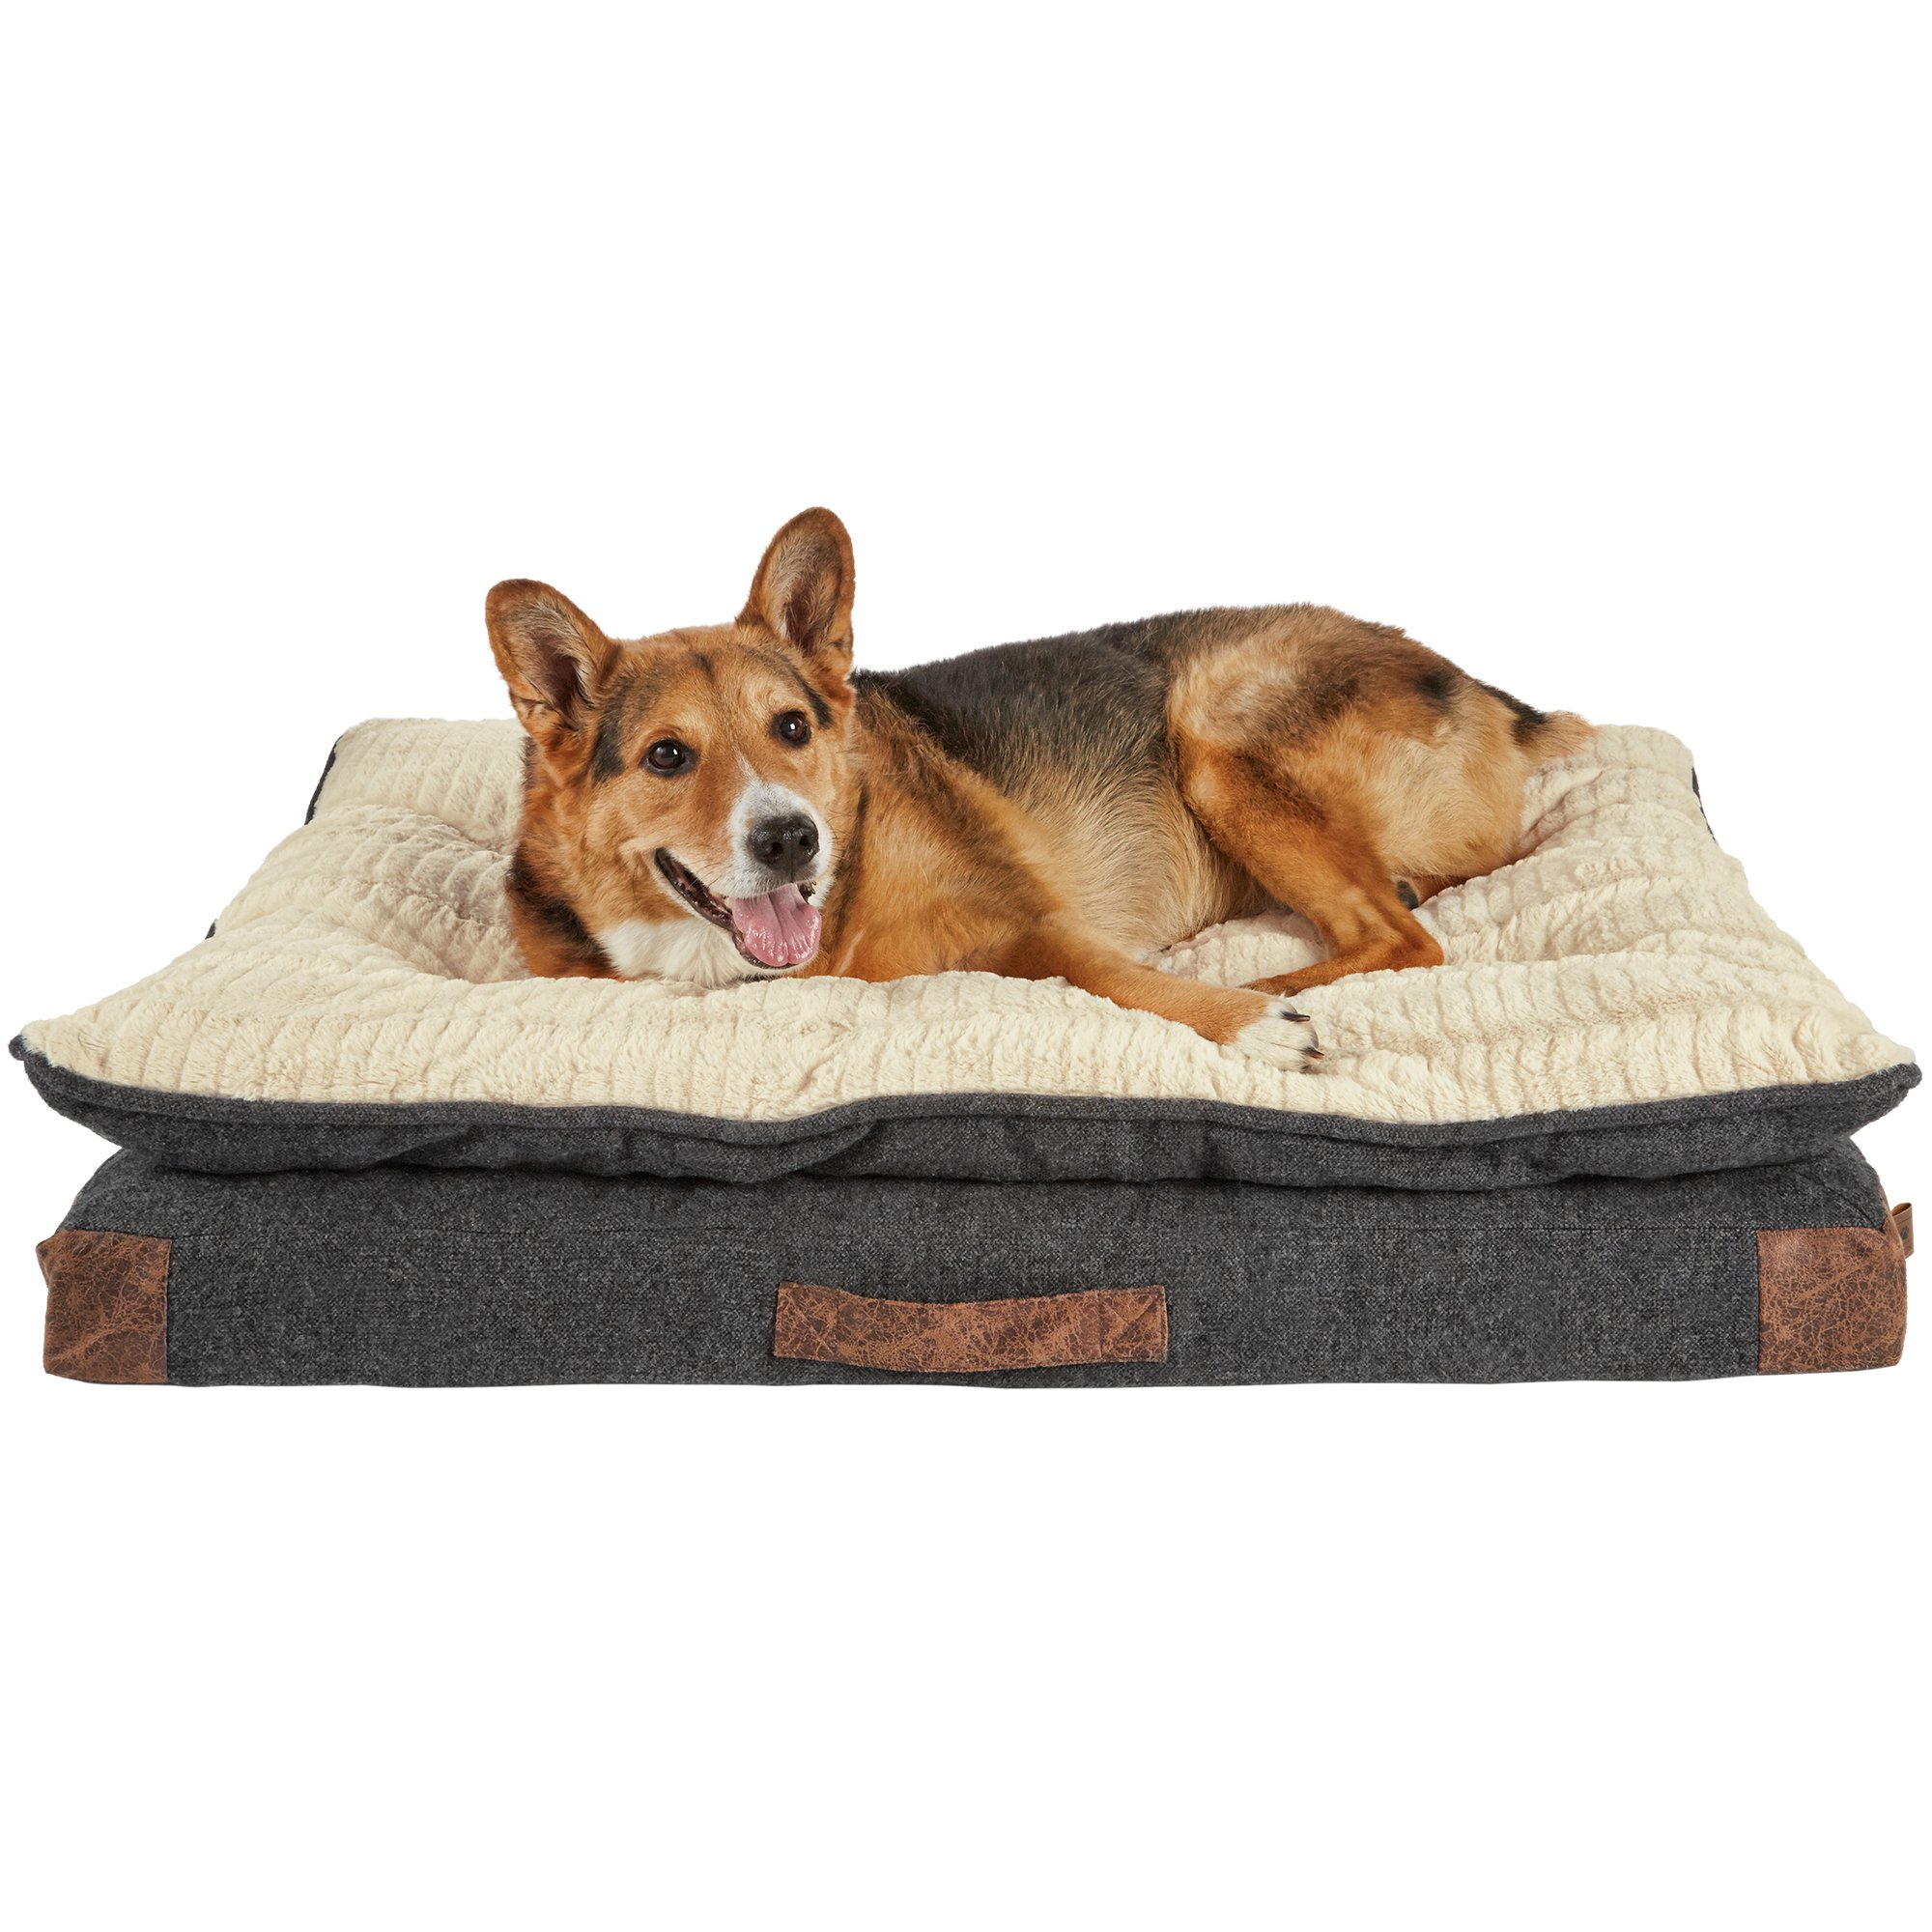 petsmart large dog beds